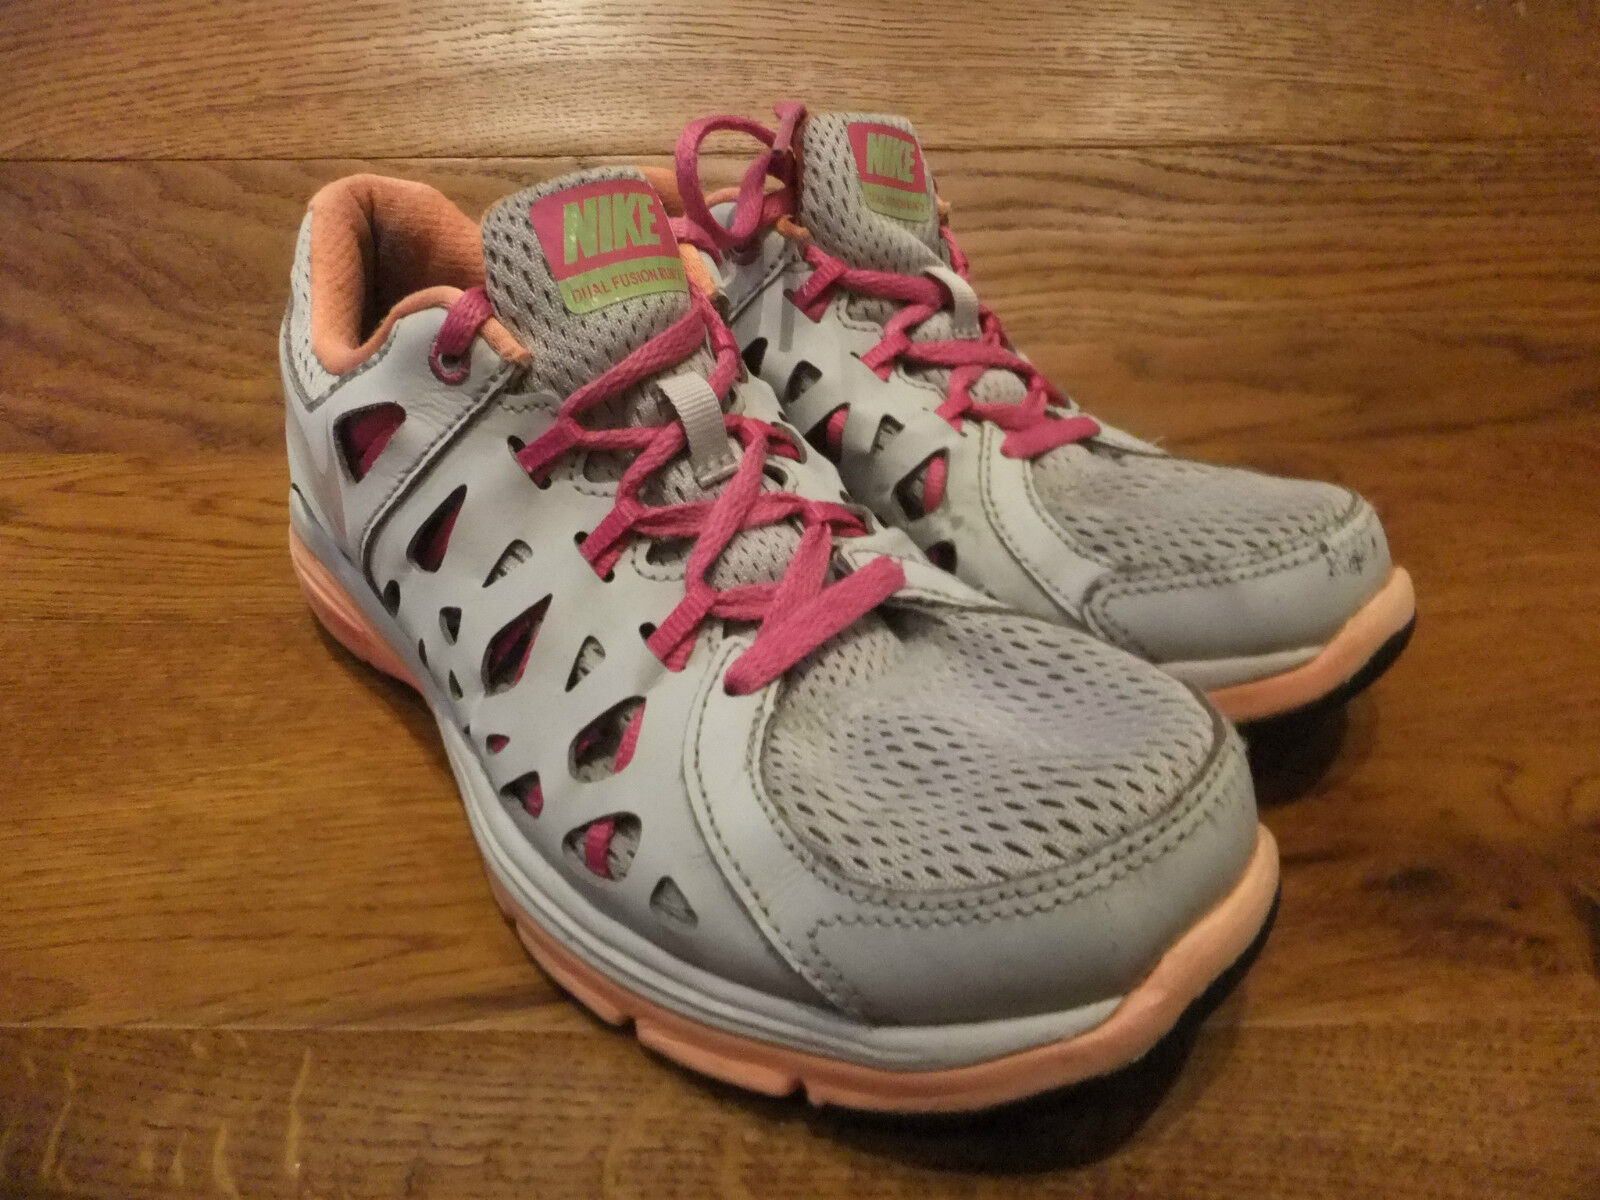 Nike Dual Fusion Run 2 Grey Running Shoes Trainers Comfortable New shoes for men and women, limited time discount